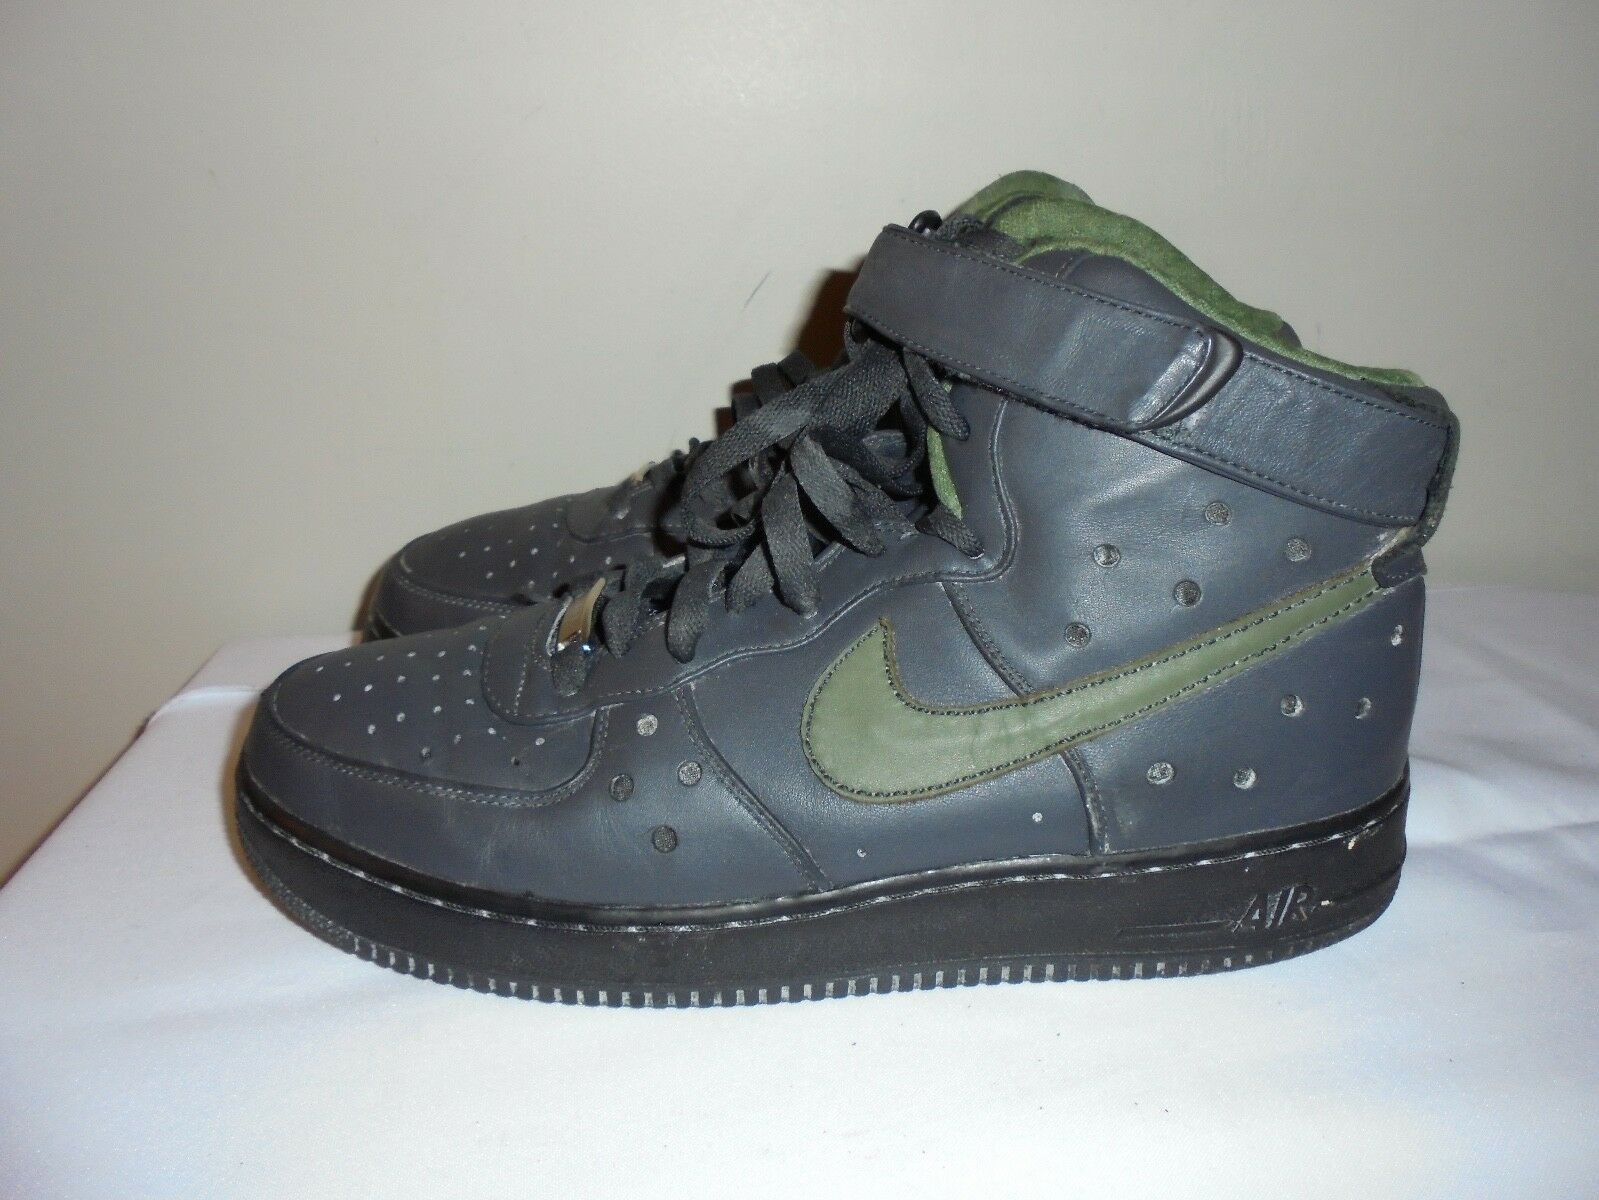 nike air force 1 prime élevée 317312031 charles charles charles barkley pack anthracite taille 10 | Moins Coûteux  408286